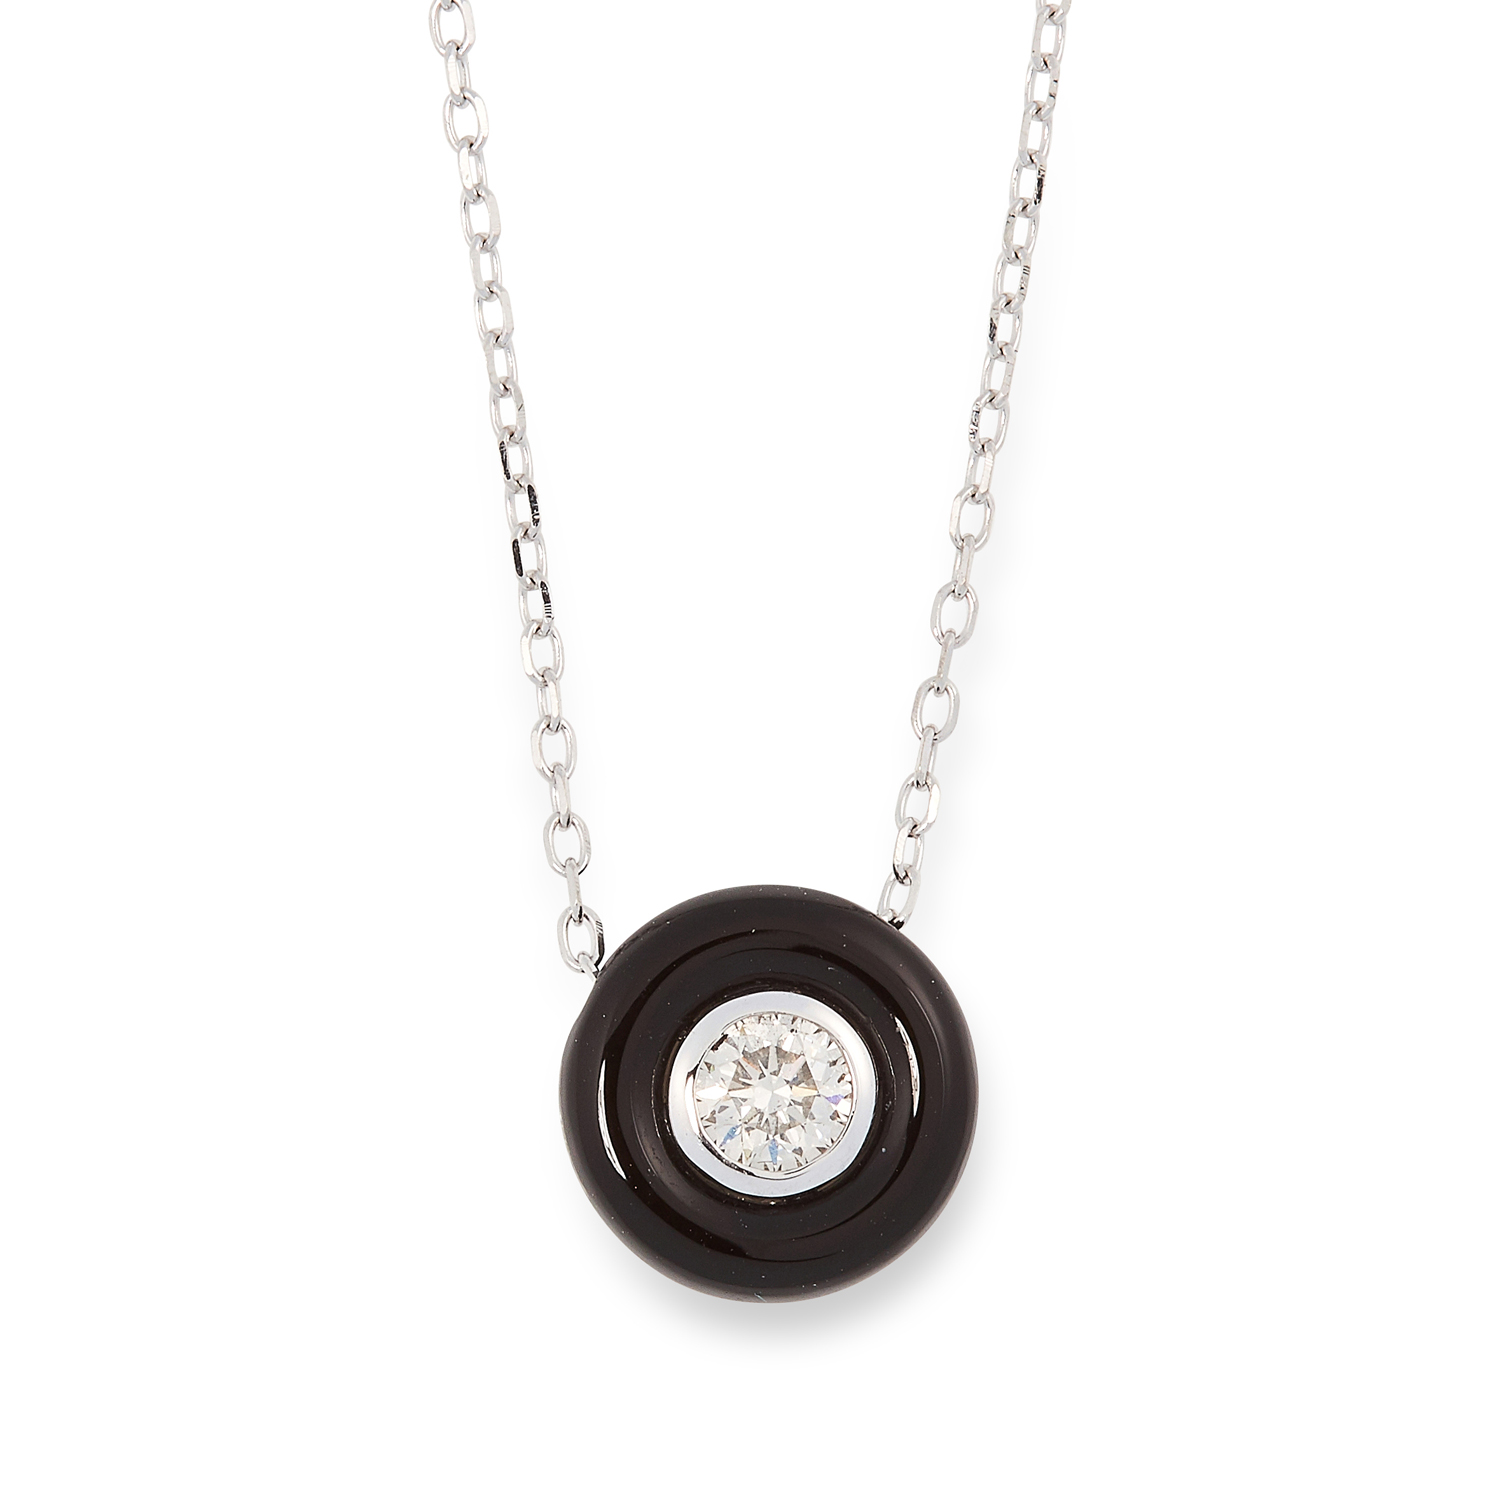 AN ONYX AND DIAMOND PENDANT AND CHAIN comprising of a round polished onyx set with a central round